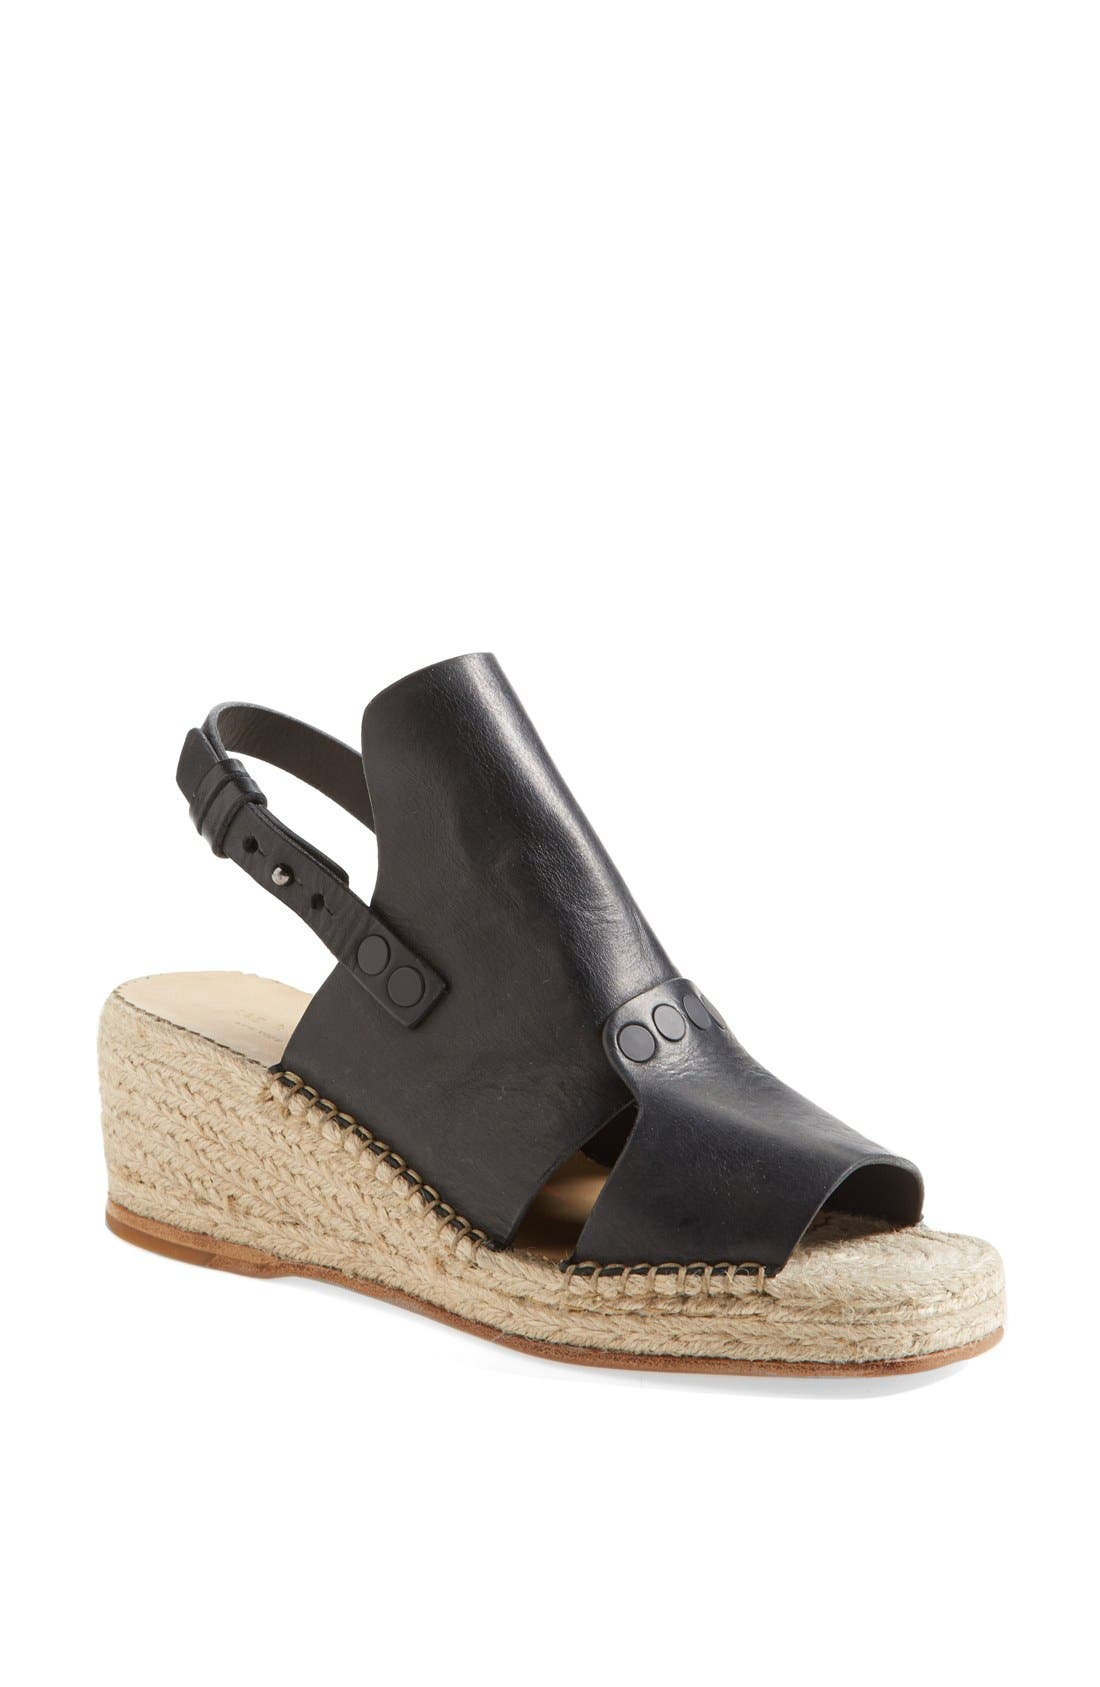 Alternate Image 1 Selected - rag & bone 'Sayre II' Espadrille Wedge Sandal